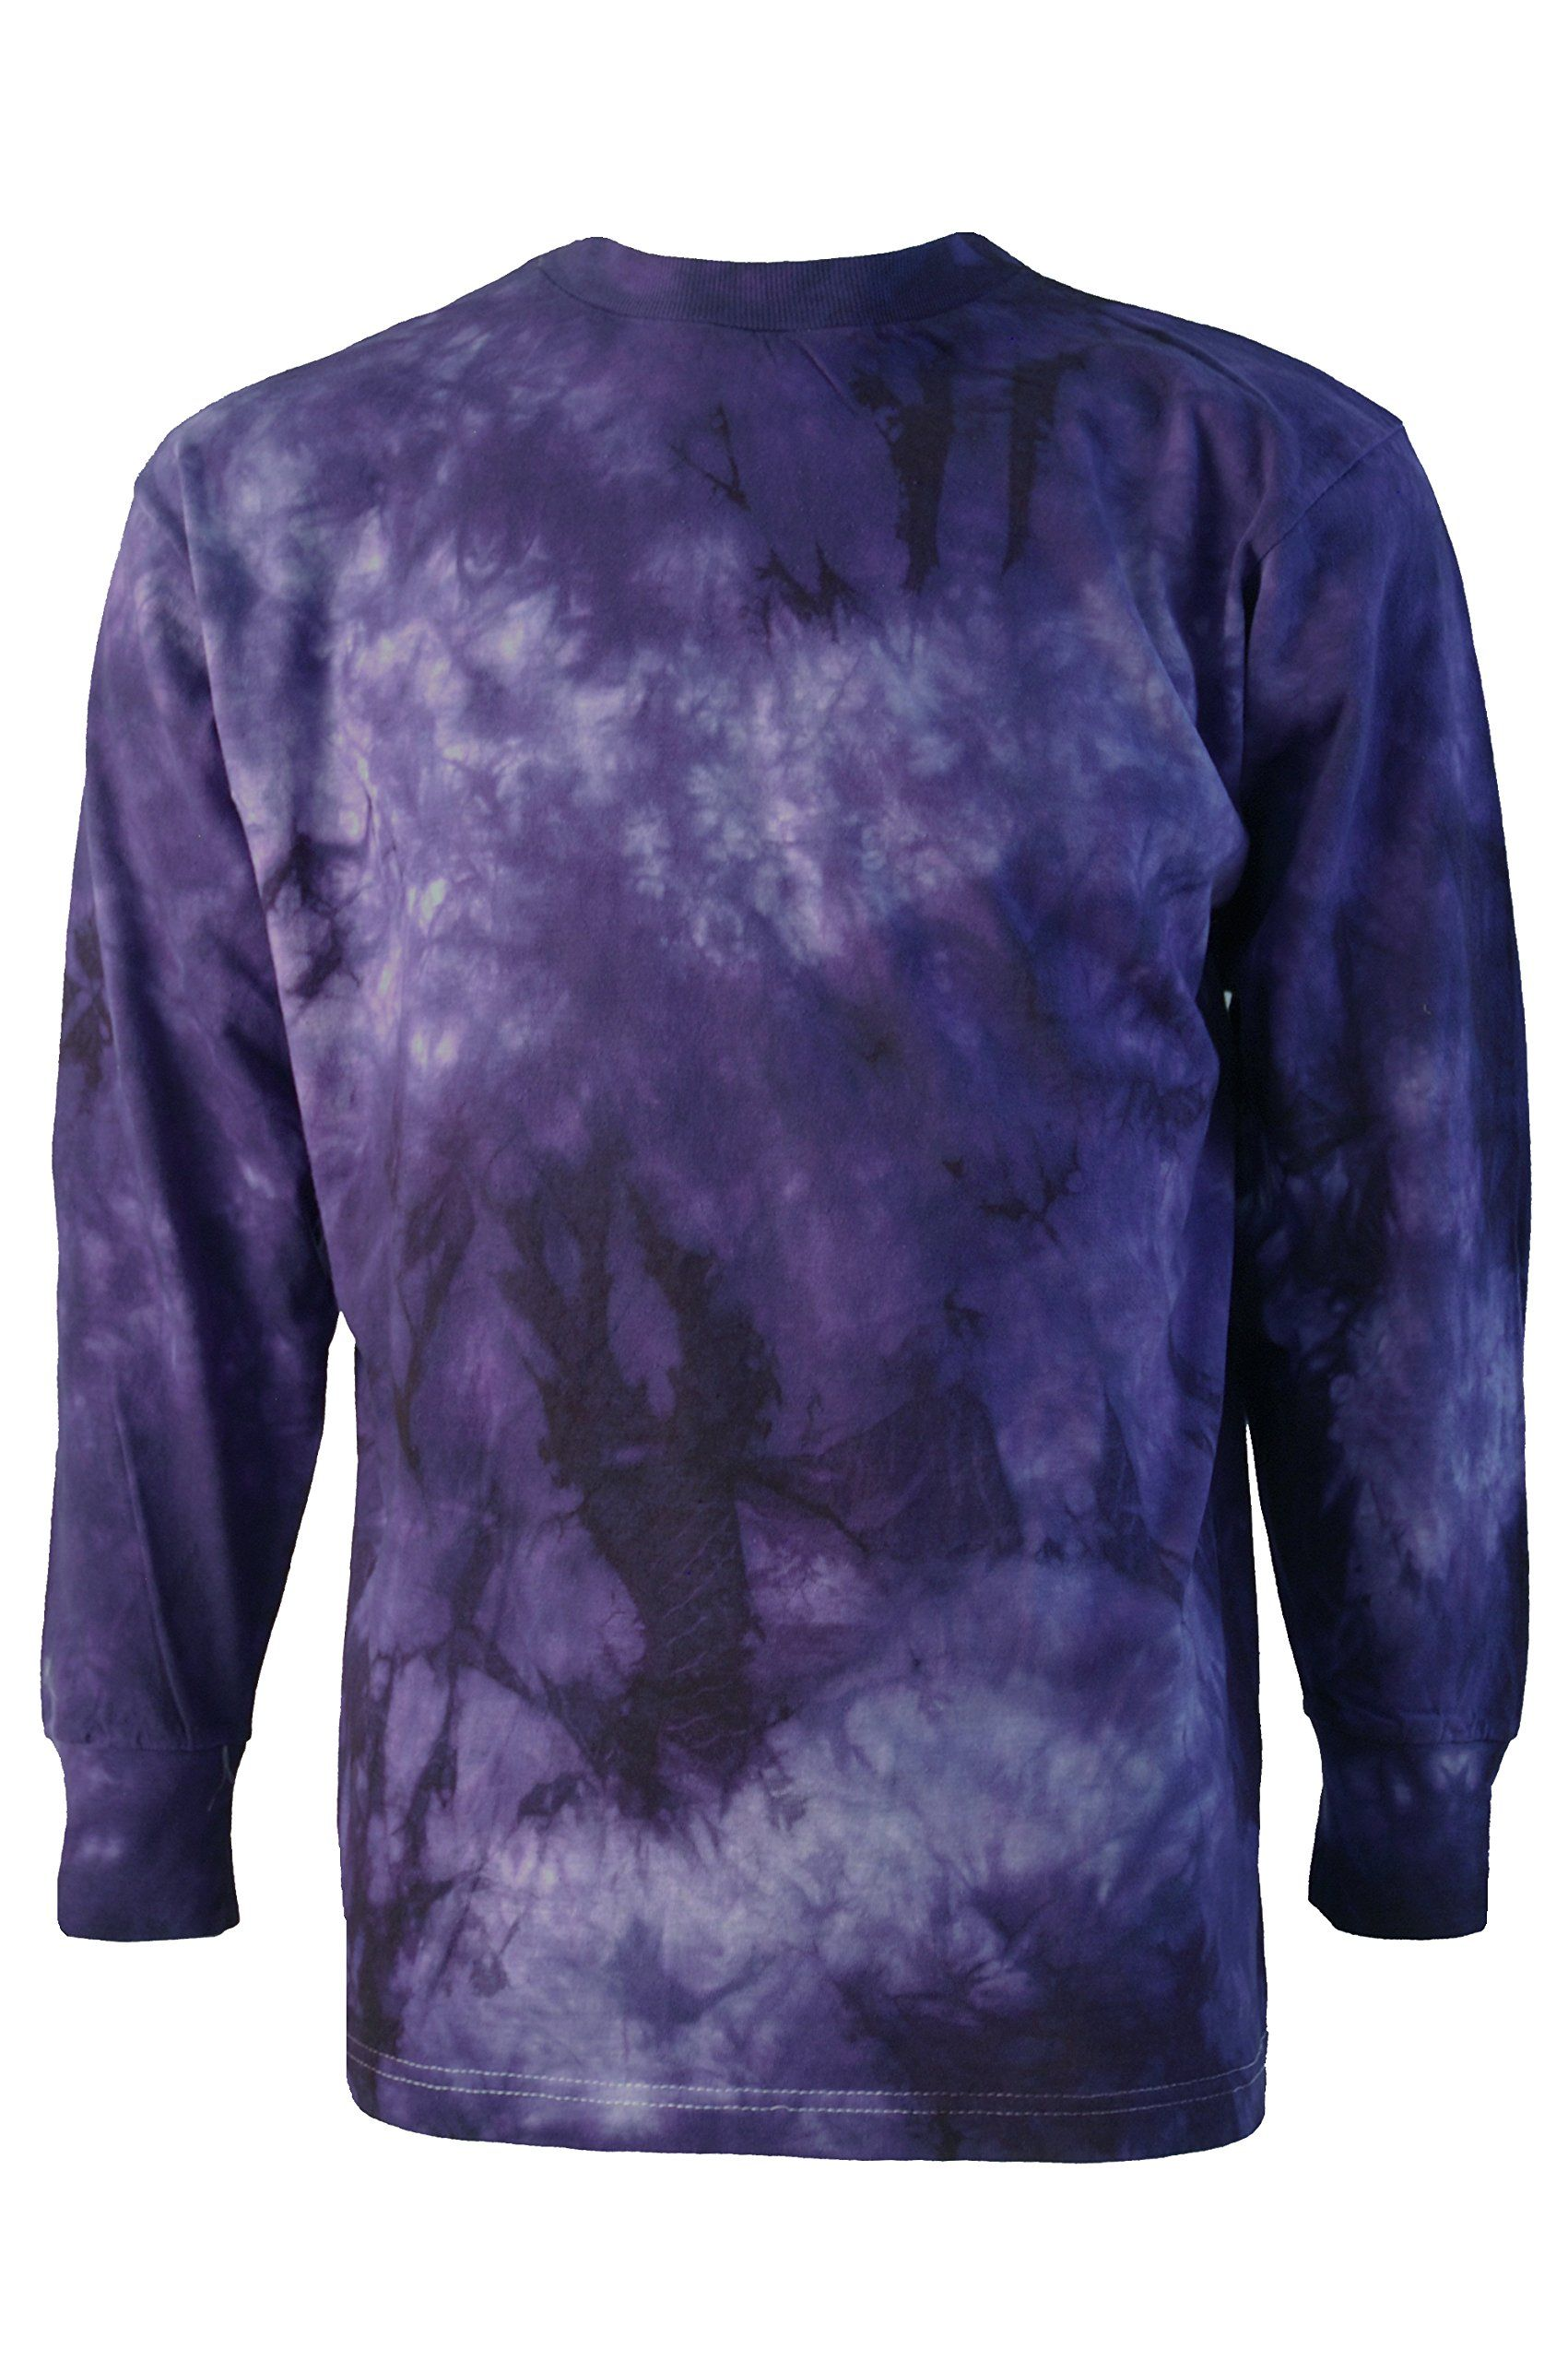 Mens Retro Festival Tie Dye Long Sleeve T Shirt Purple And White Size XLarge 44inch 112cm Chest